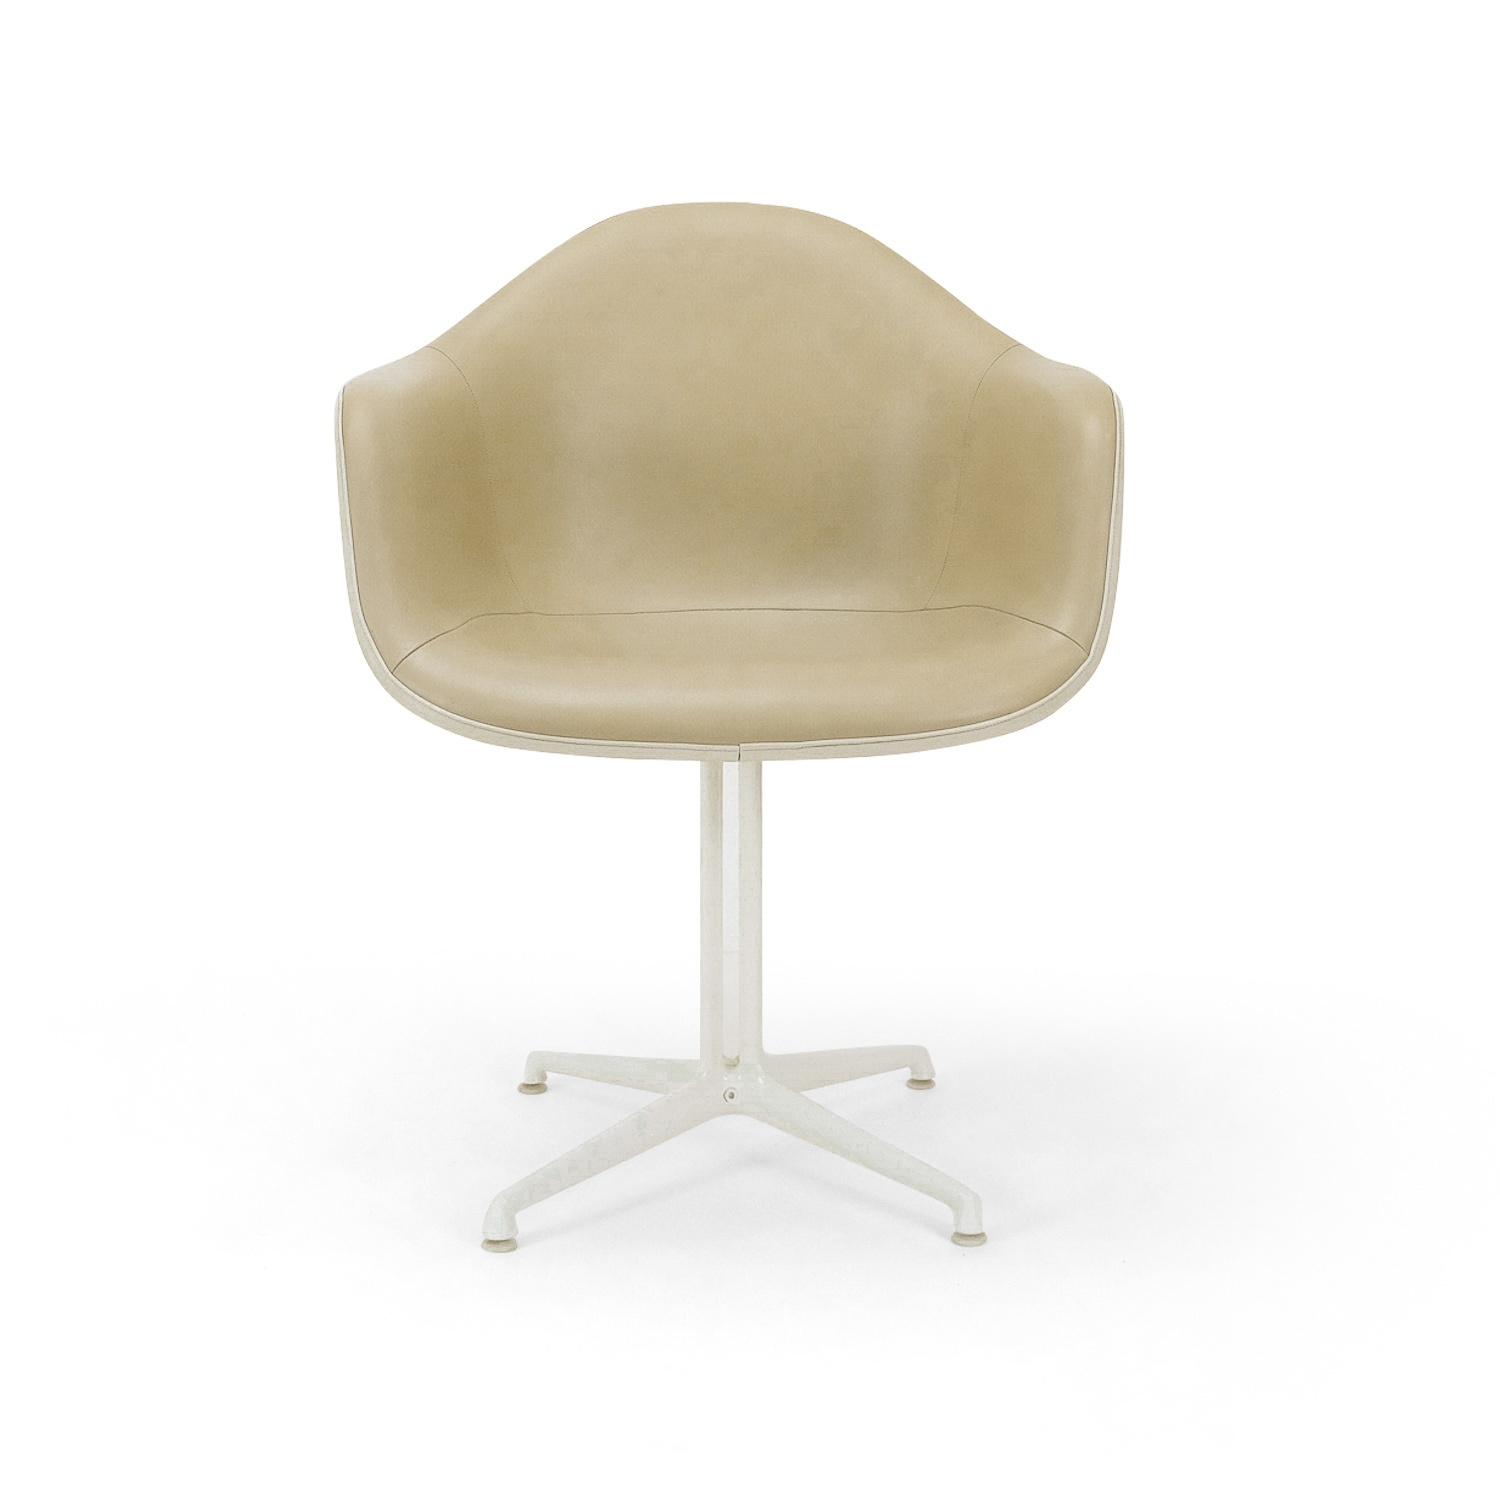 Set of 4, Vintage DAL Armchairs by Eames